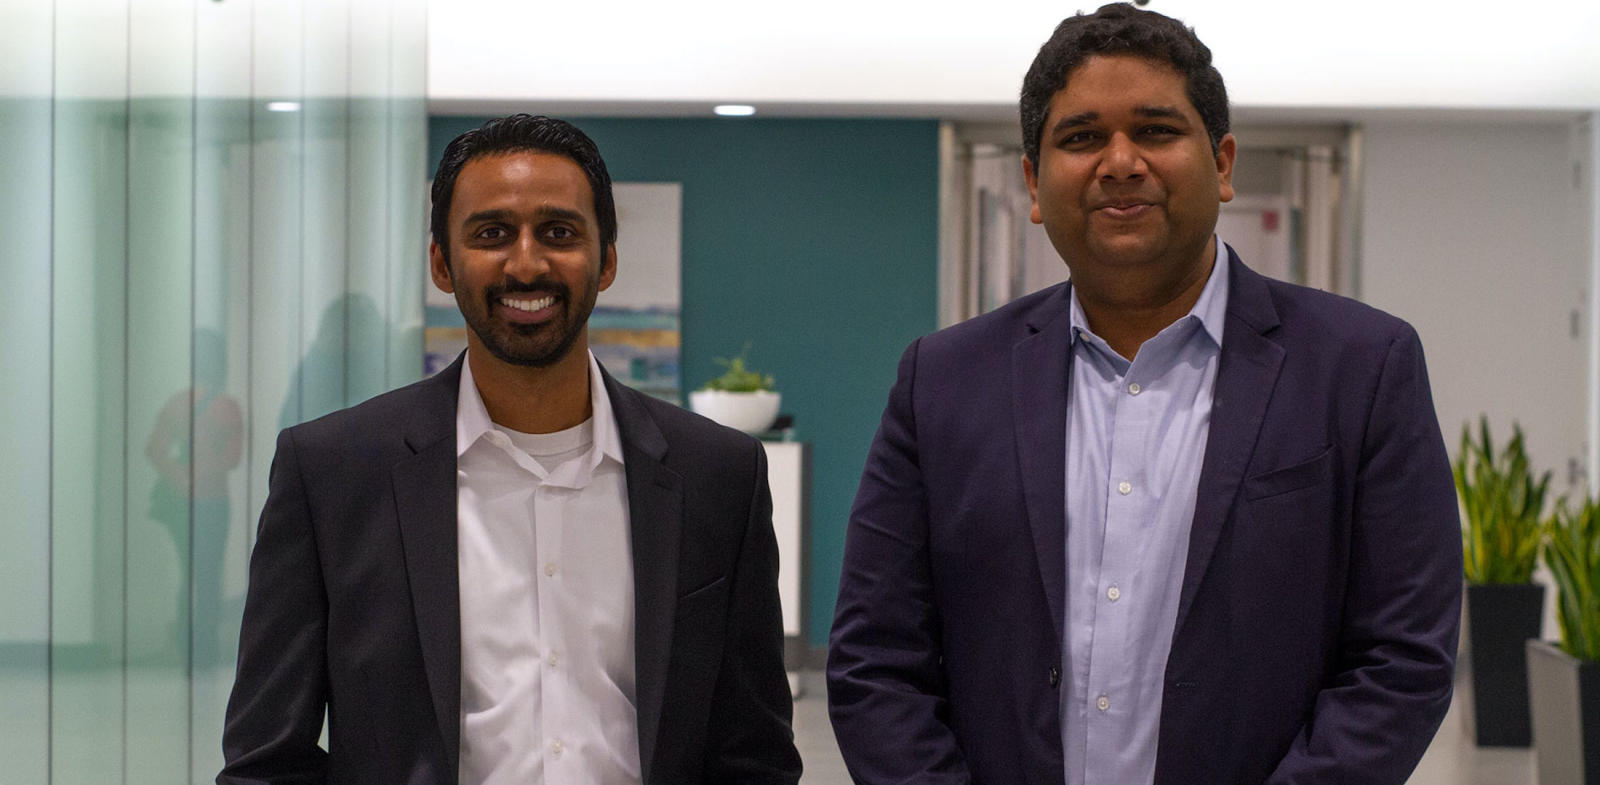 two men standing in an office hallway, Dr. Vivek Garg, CareMore's Chief Medical Officer, caremore health